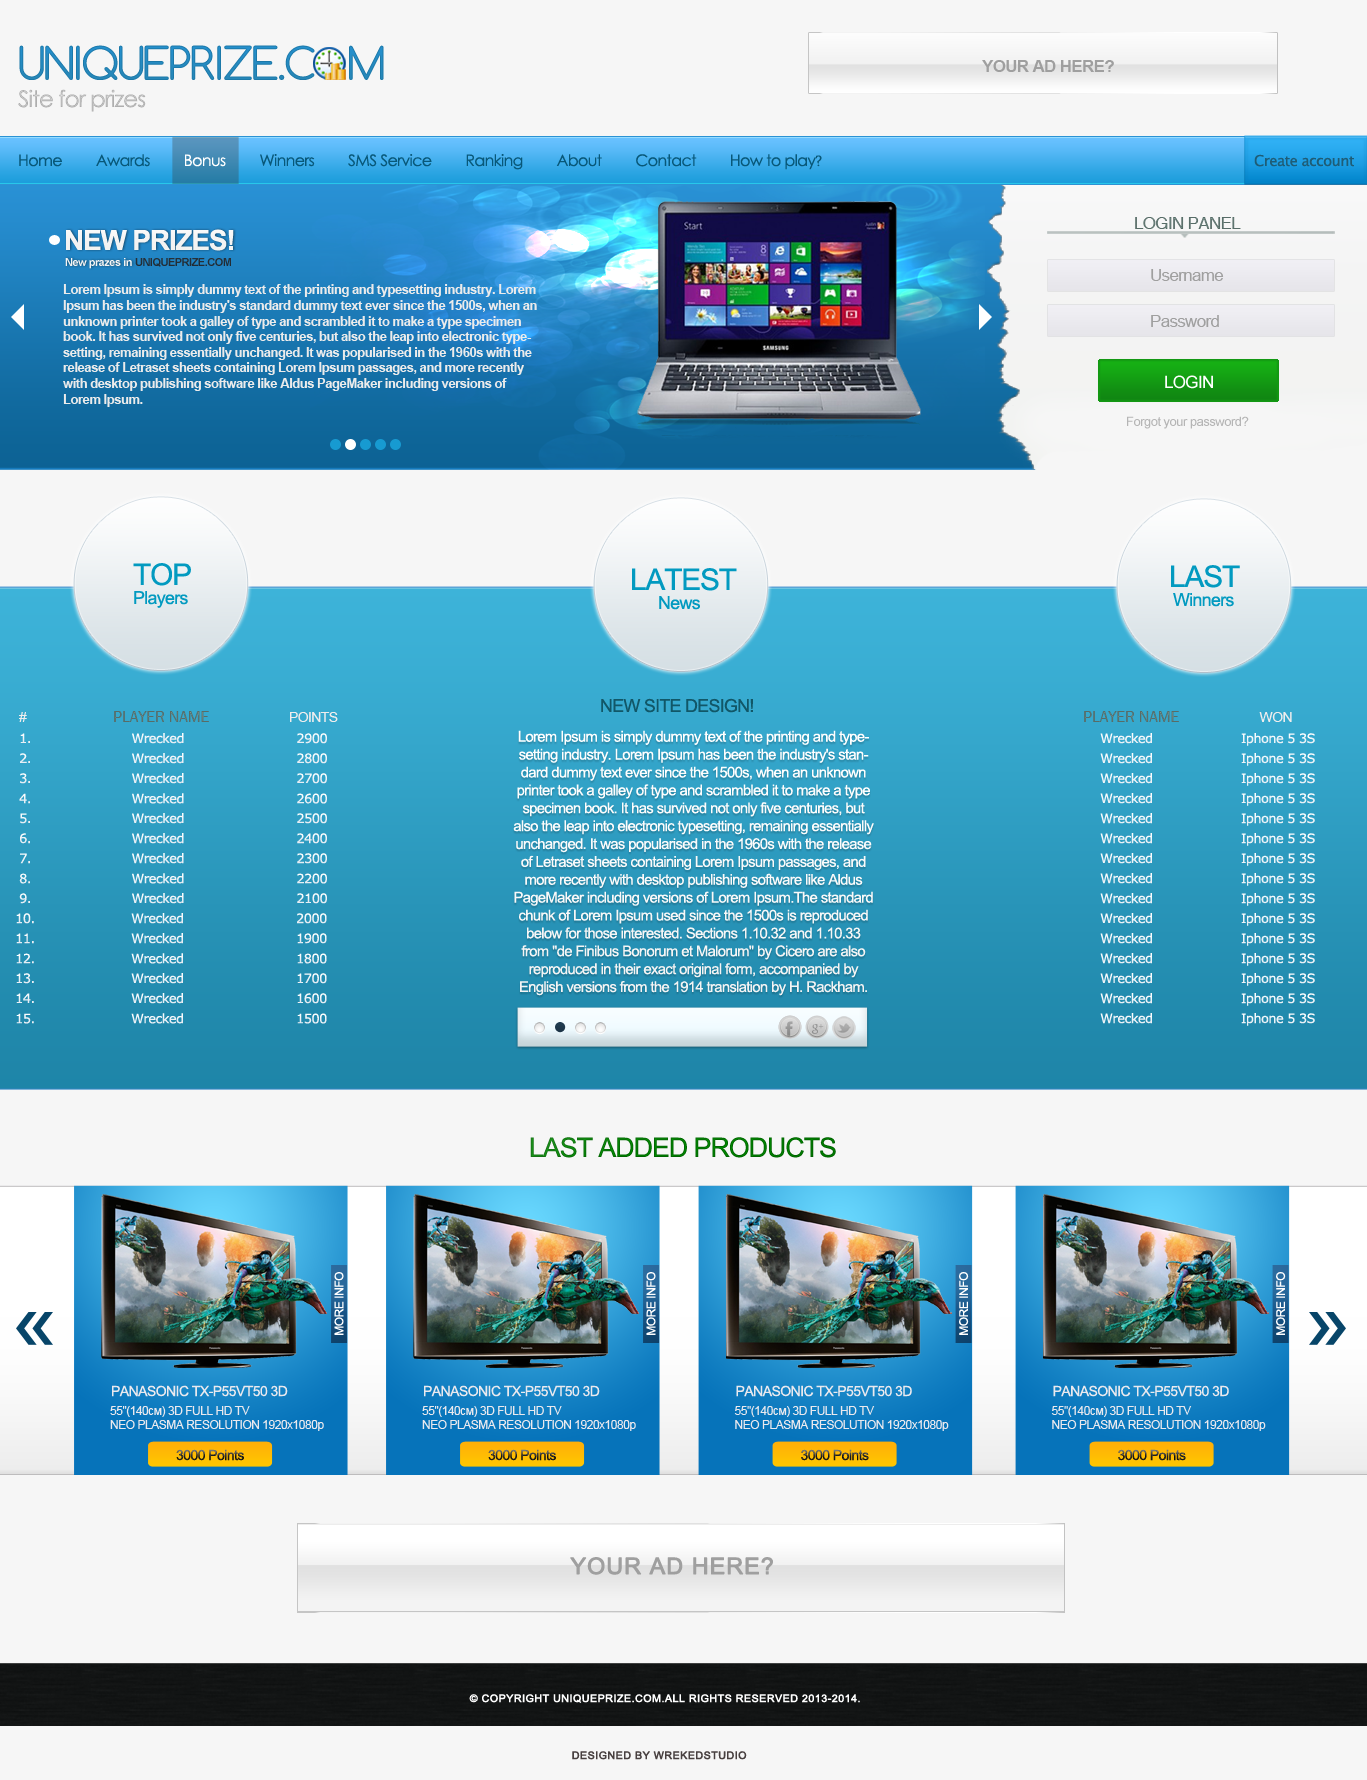 UNIQUEPRIZE.COM - Site for prizes [Web Design] by mconev